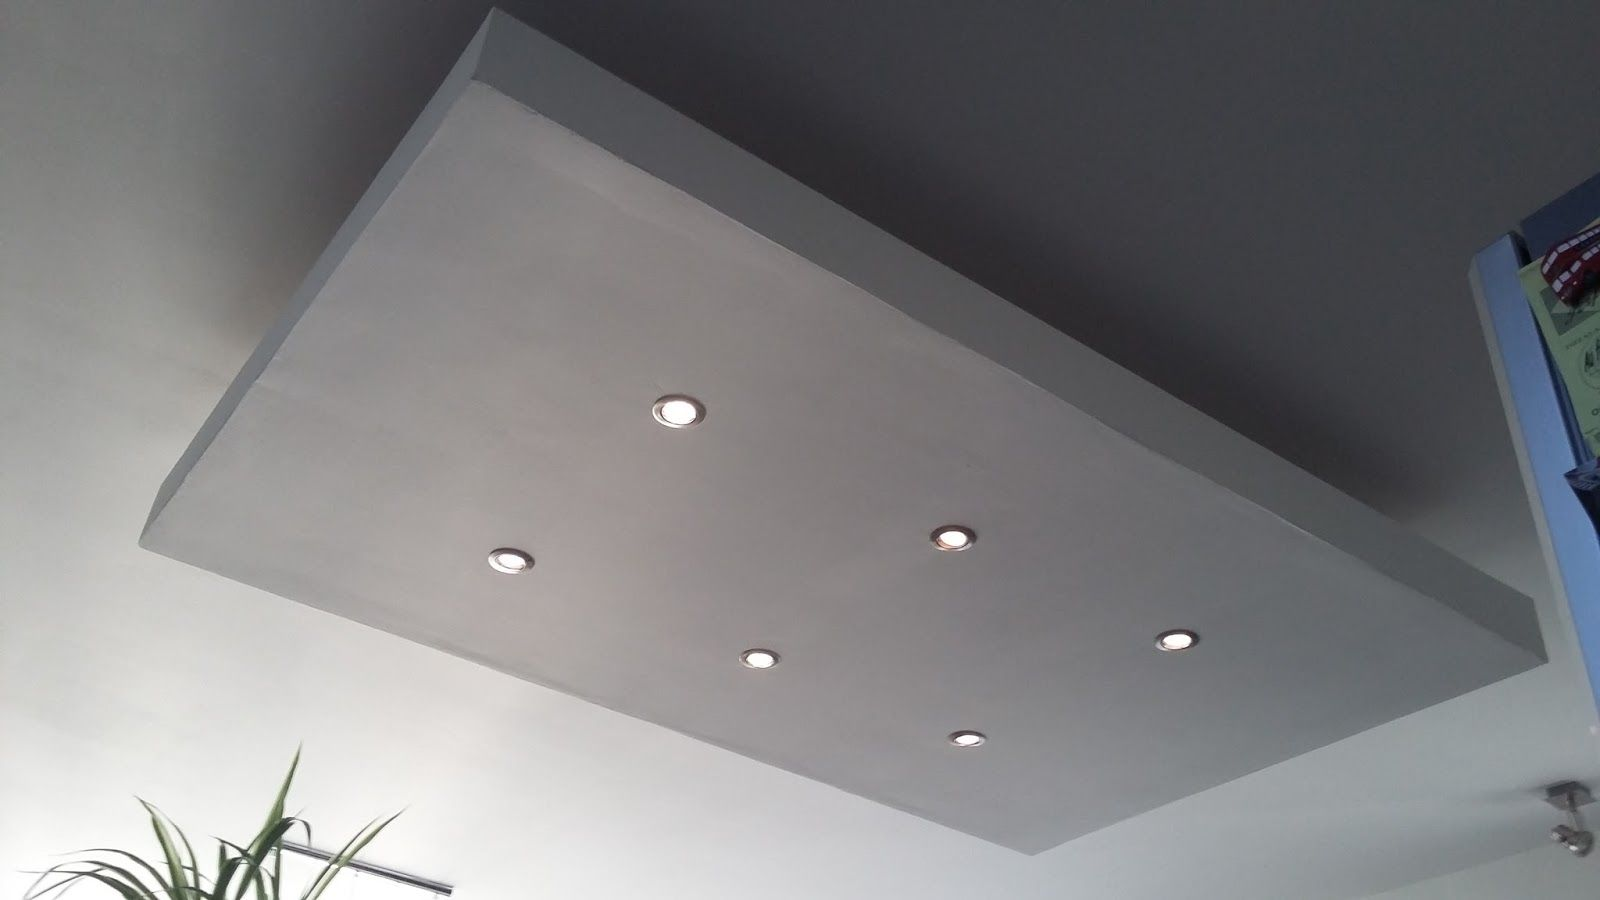 D Roch Plafond Descendu Suspendu Ilot Central Decaissement Design Spots Caisson Placo Platre